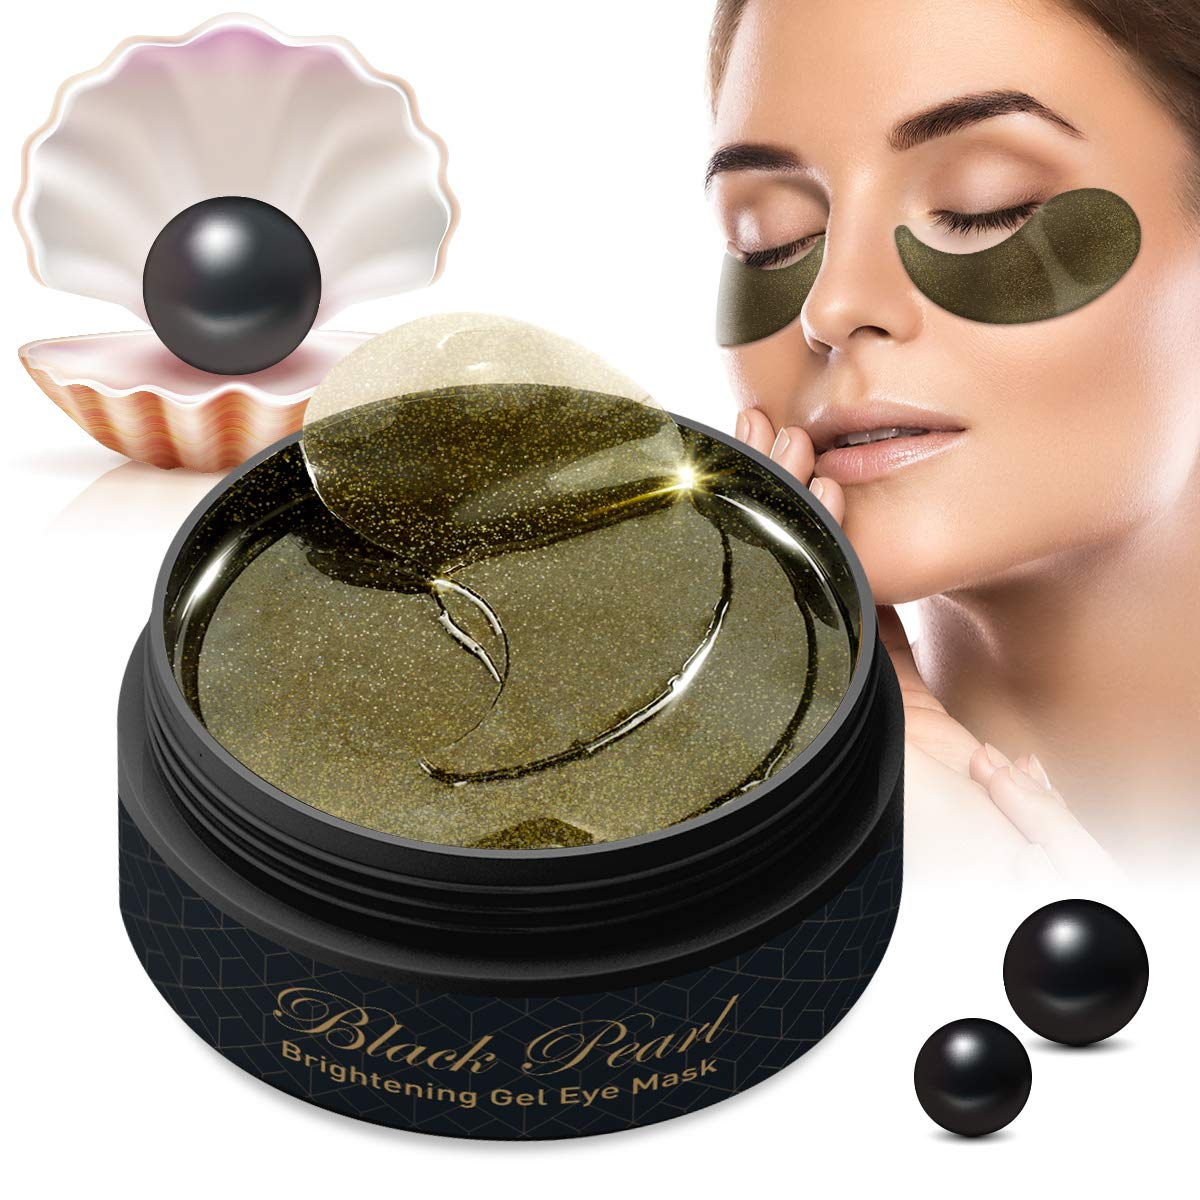 Black Pearl Collagen Eye Masks by Puriderma [60pc Set] Brightening Hydrogel Under-Eye Patches with Retinol to Rejuvenate Skin, Reduce Dark Circles, Fine Lines, Wrinkles by Puriderma